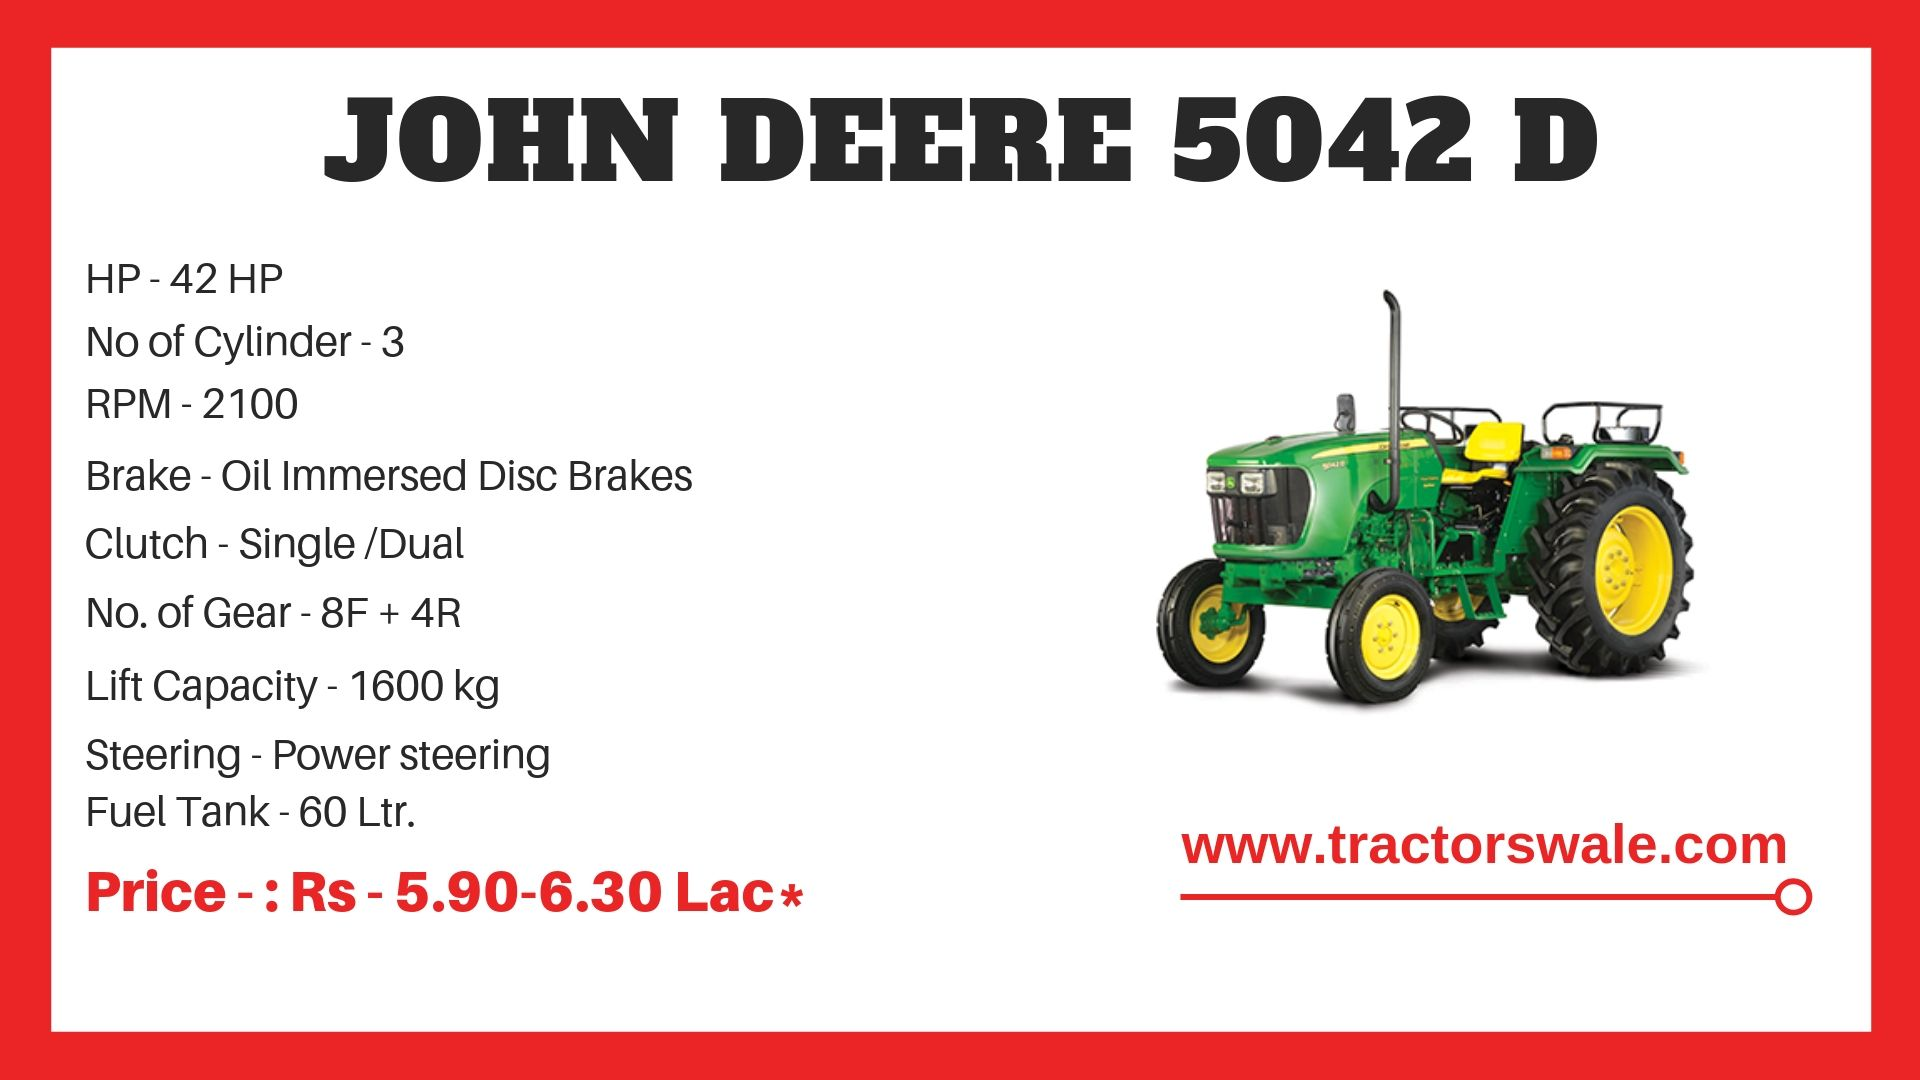 John Deere 5042 D Tractor Specifications